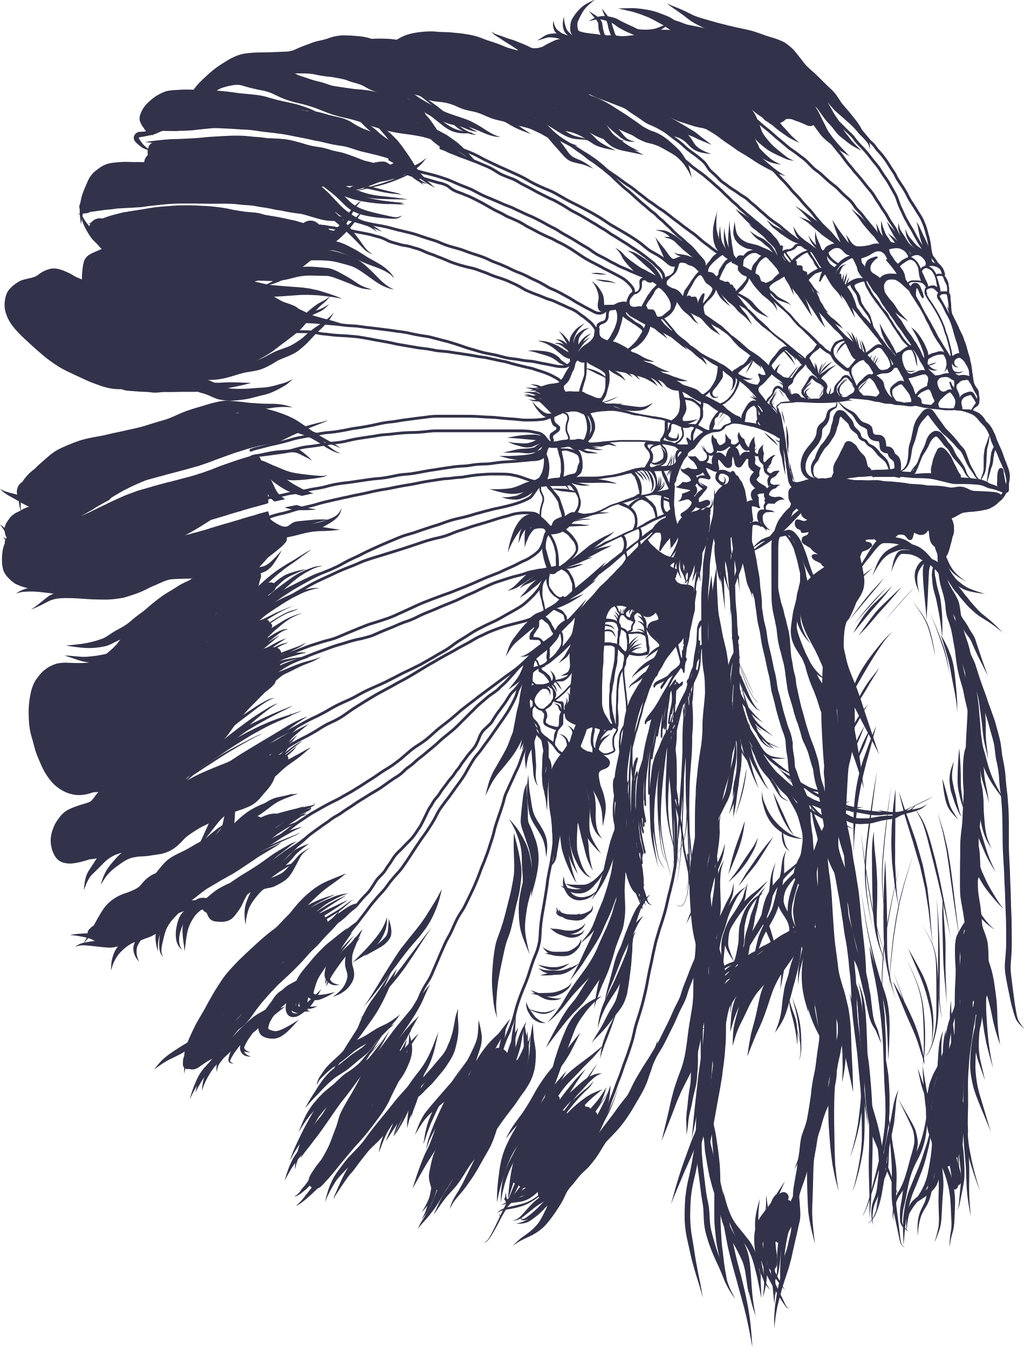 1024x1347 Indian Chief Headdress Tattoo Wallpaper 6.jpg Tattoo